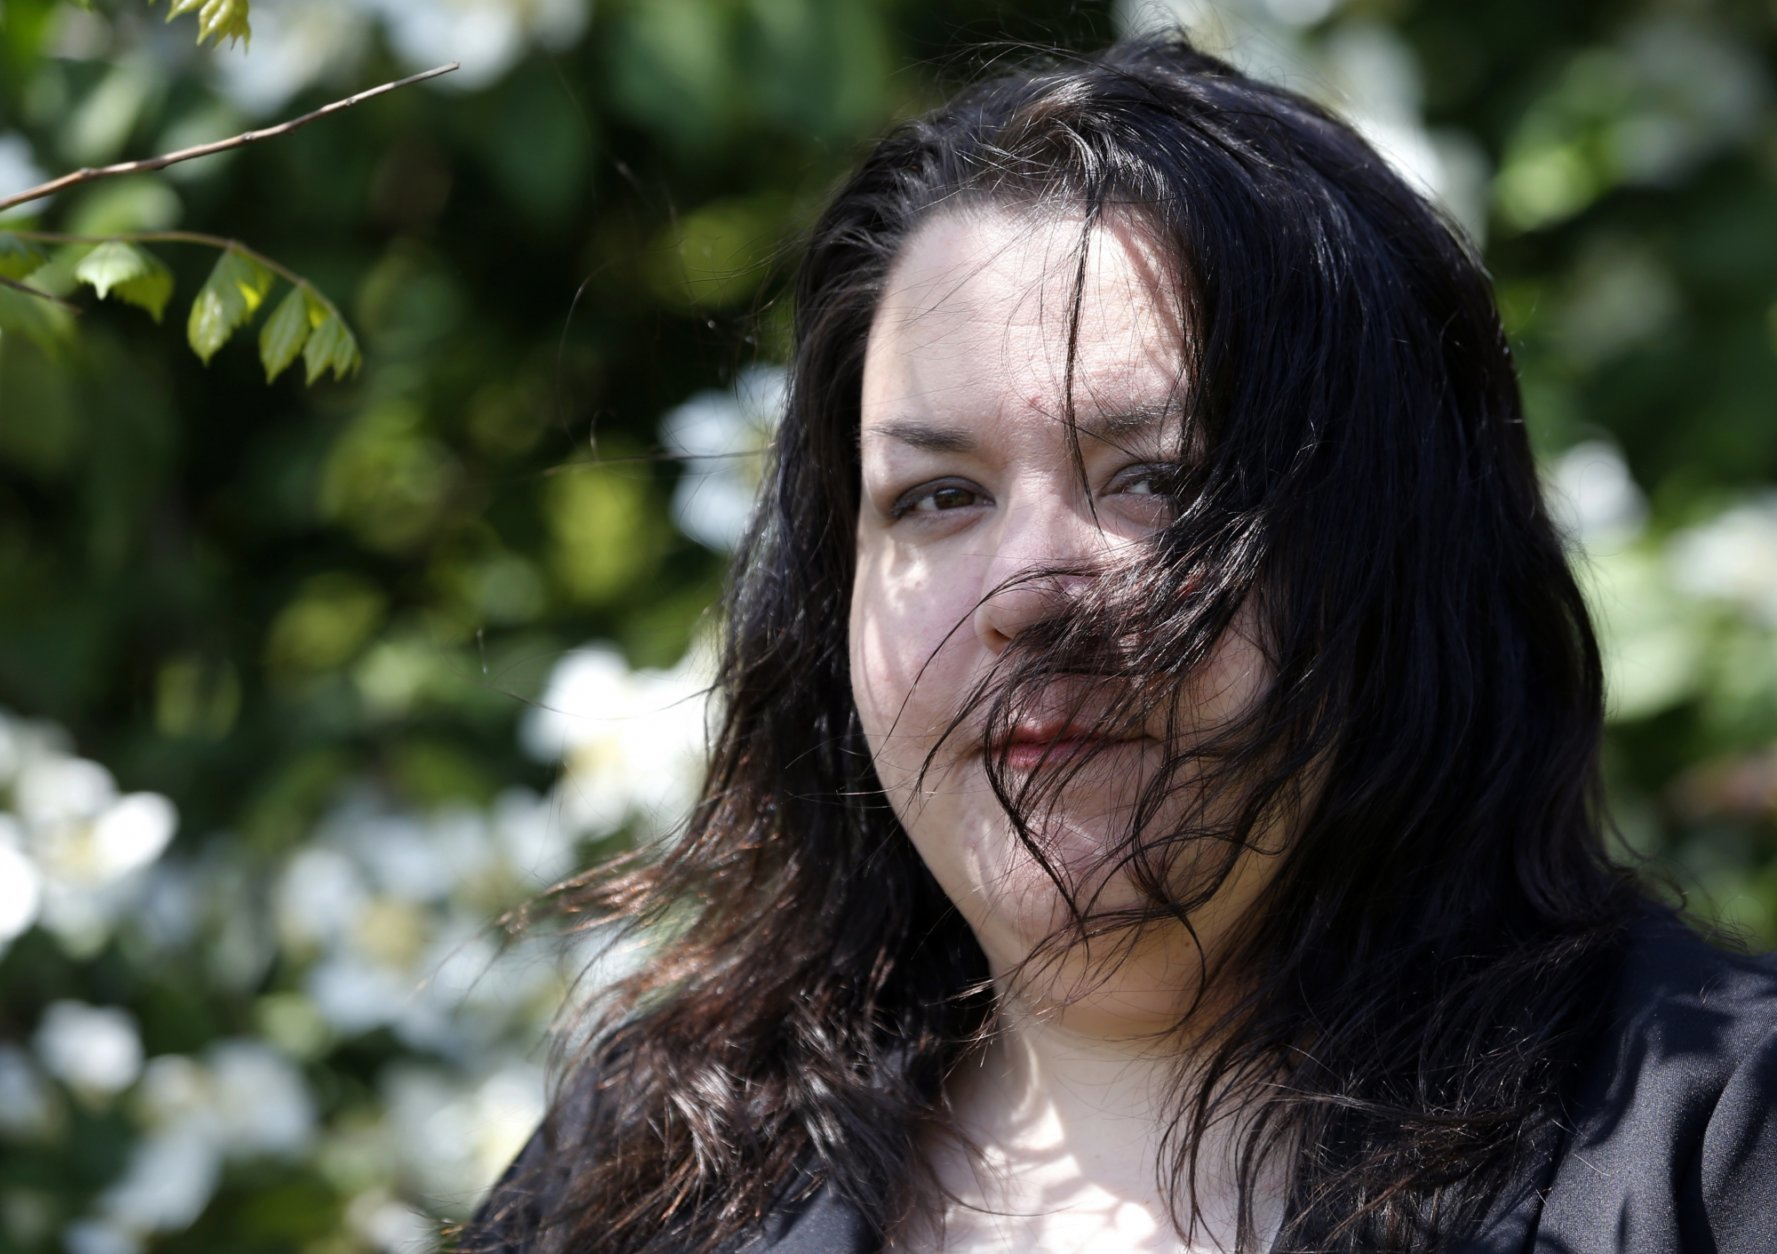 home incest young 'Incest' mother 'filmed sexually abusing young girl in bath ...